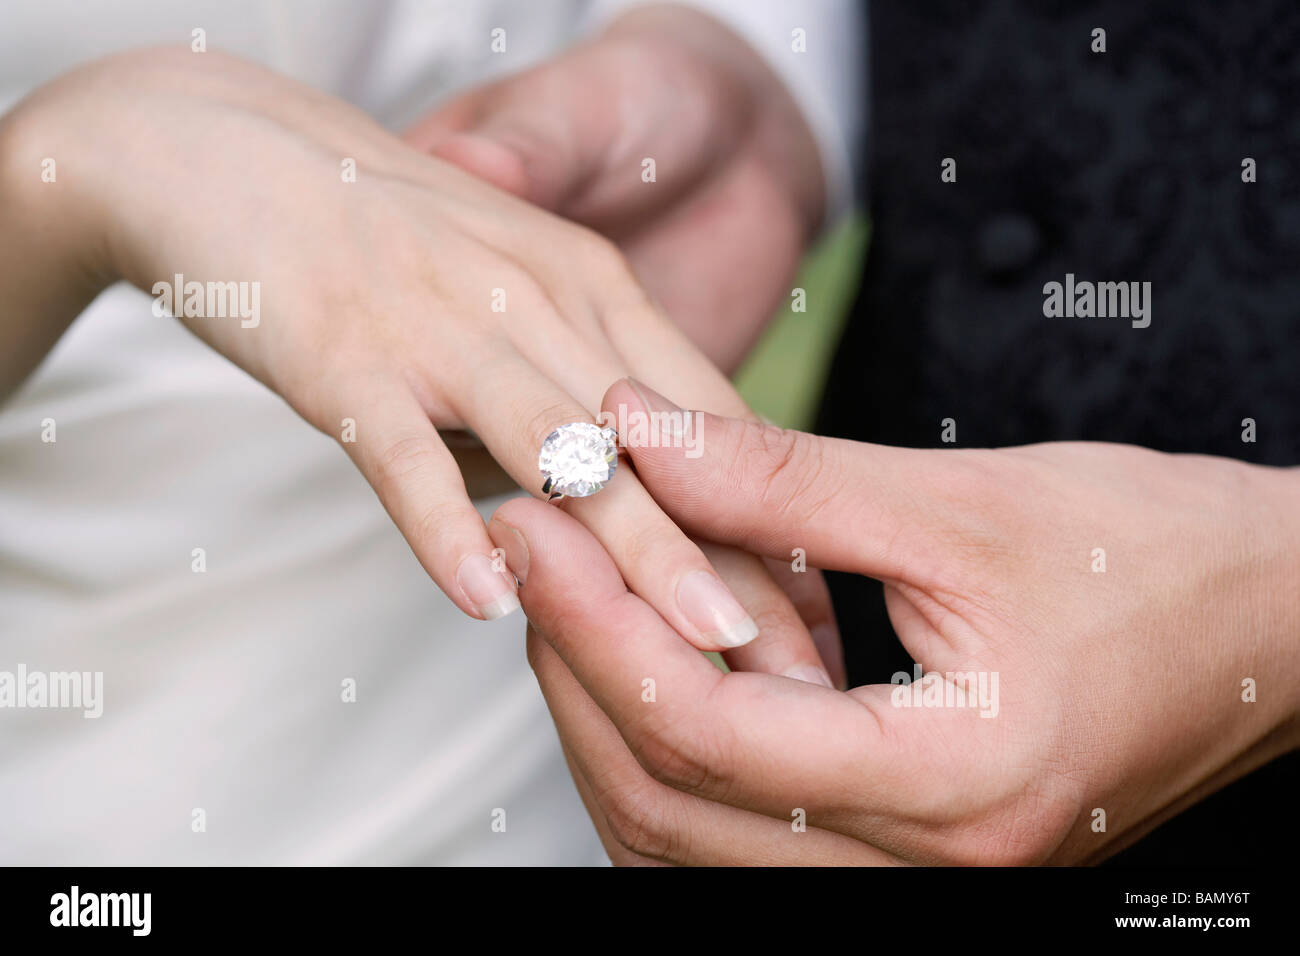 Marriage Hands Wedding Ring Mixed Stock Photos & Marriage Hands ...